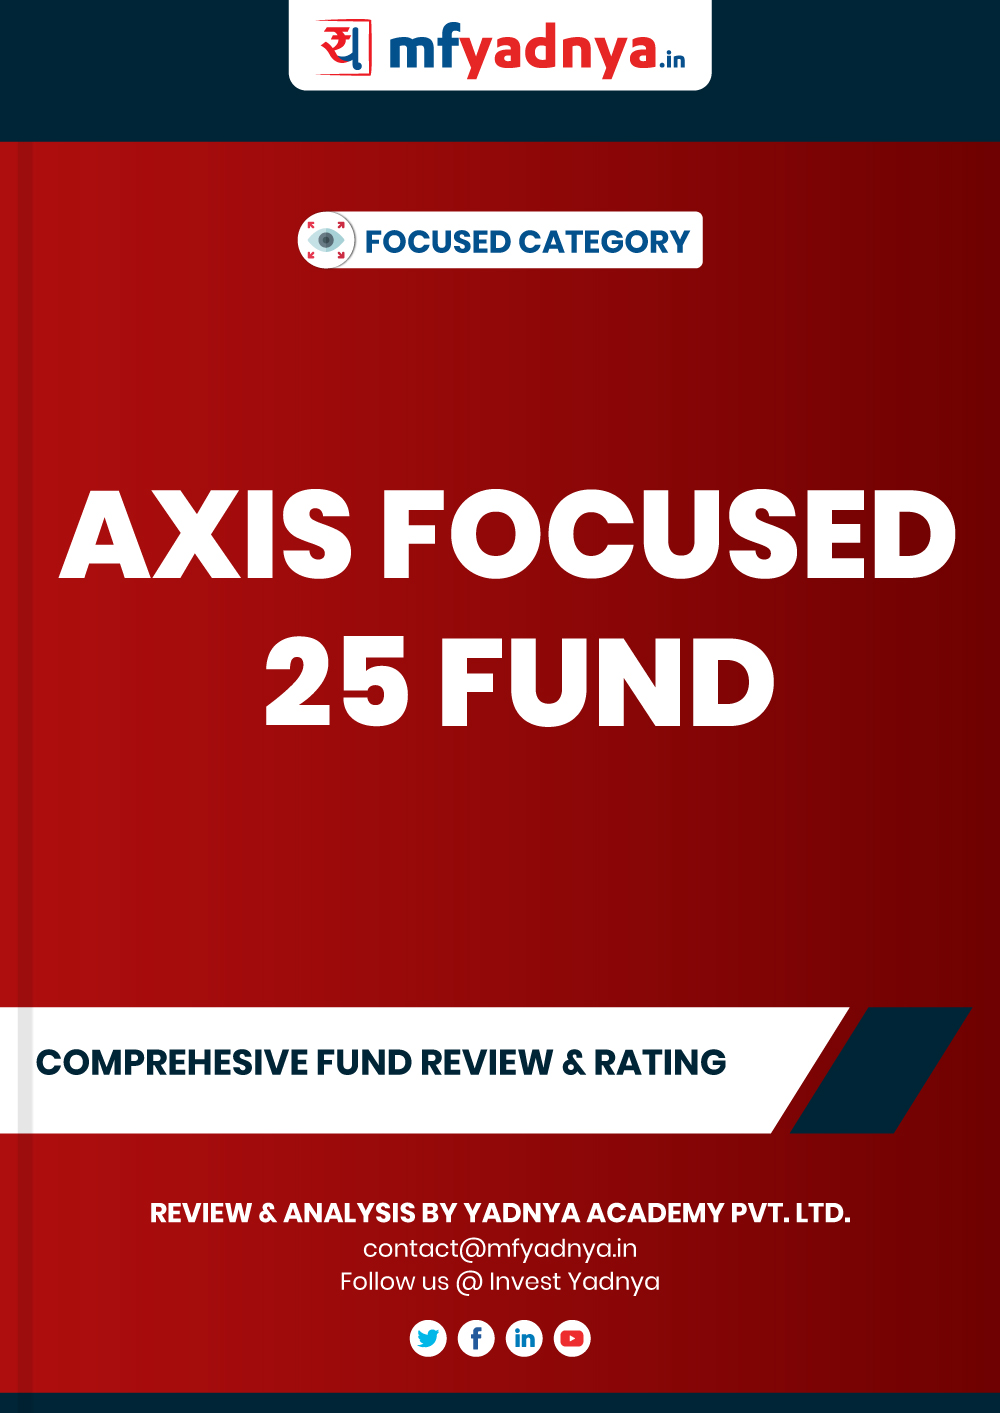 Focused Category Review - AXIS Focused 25 Fund. Most Comprehensive and detailed MF review based on Yadnya's proprietary methodology of Green, Yellow & Red Star. Detailed Analysis & Review based on May 31st, 2020 data. Review also gives you the historical trend of the performance which will show fund's performance consistency.